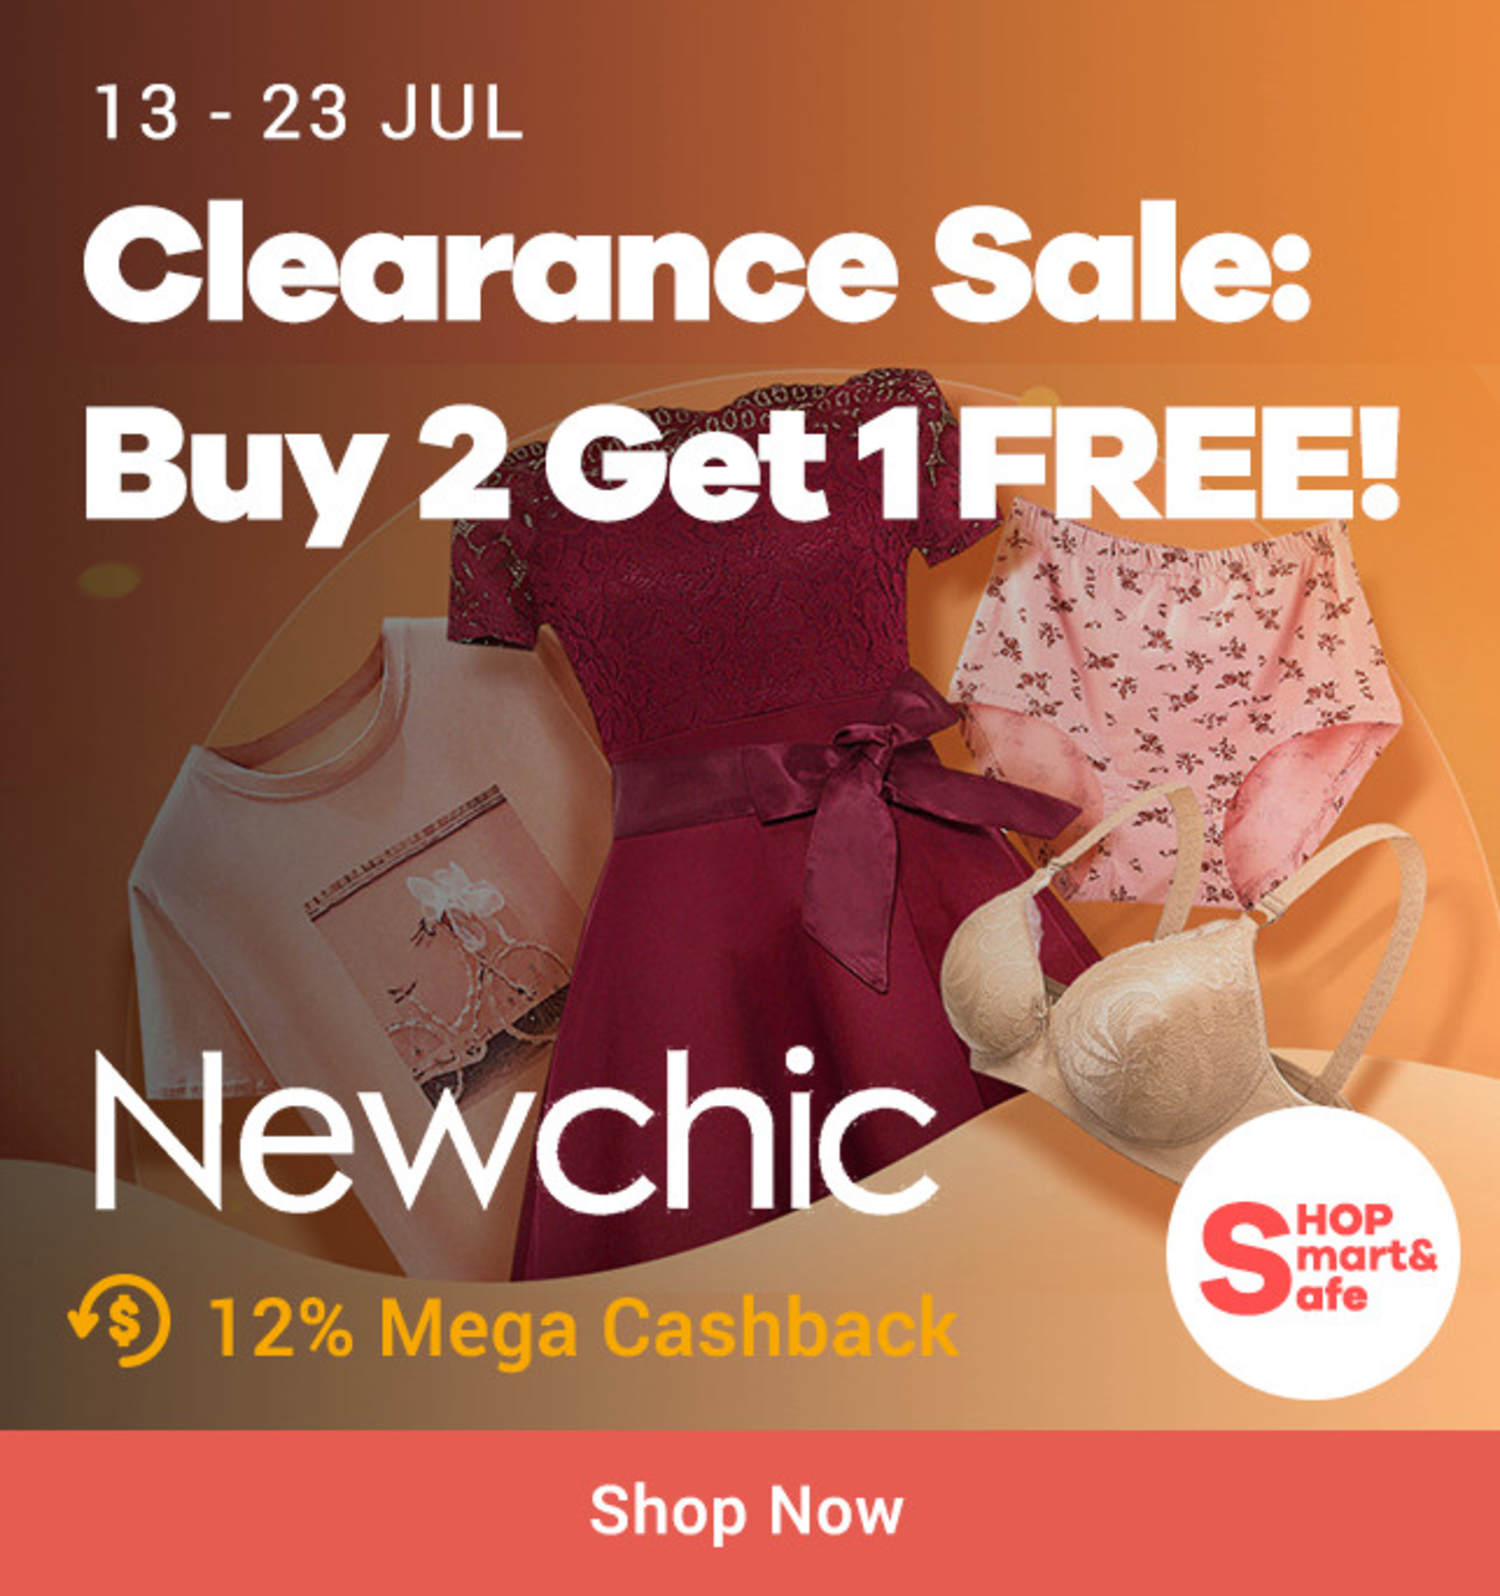 New Chic: Clearance Sale Buy 2 Get 1 Free